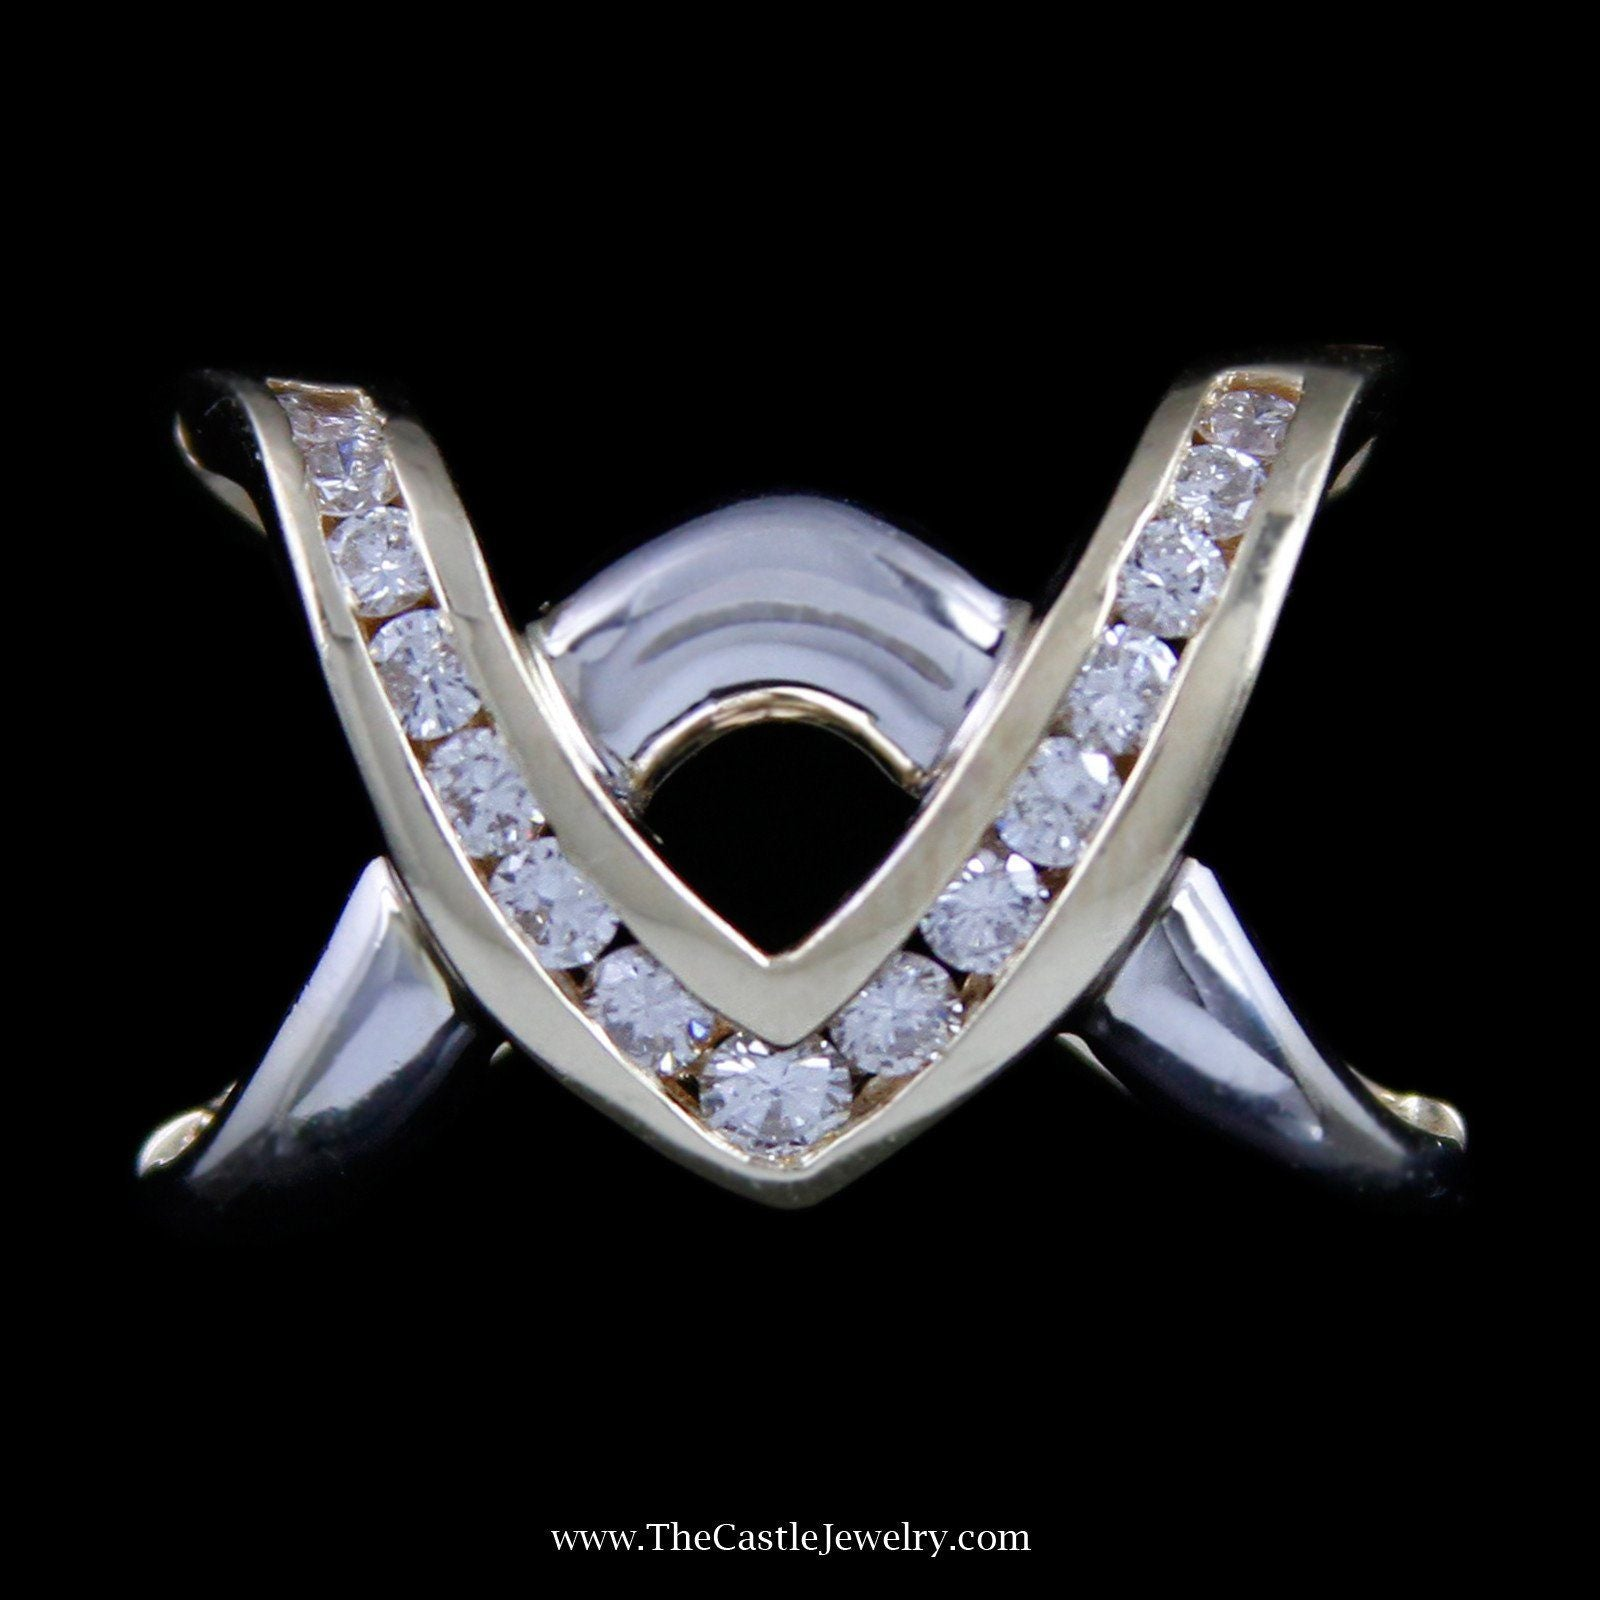 Unique Slide Pendant with Channel Set Round Brilliant Cut Diamonds